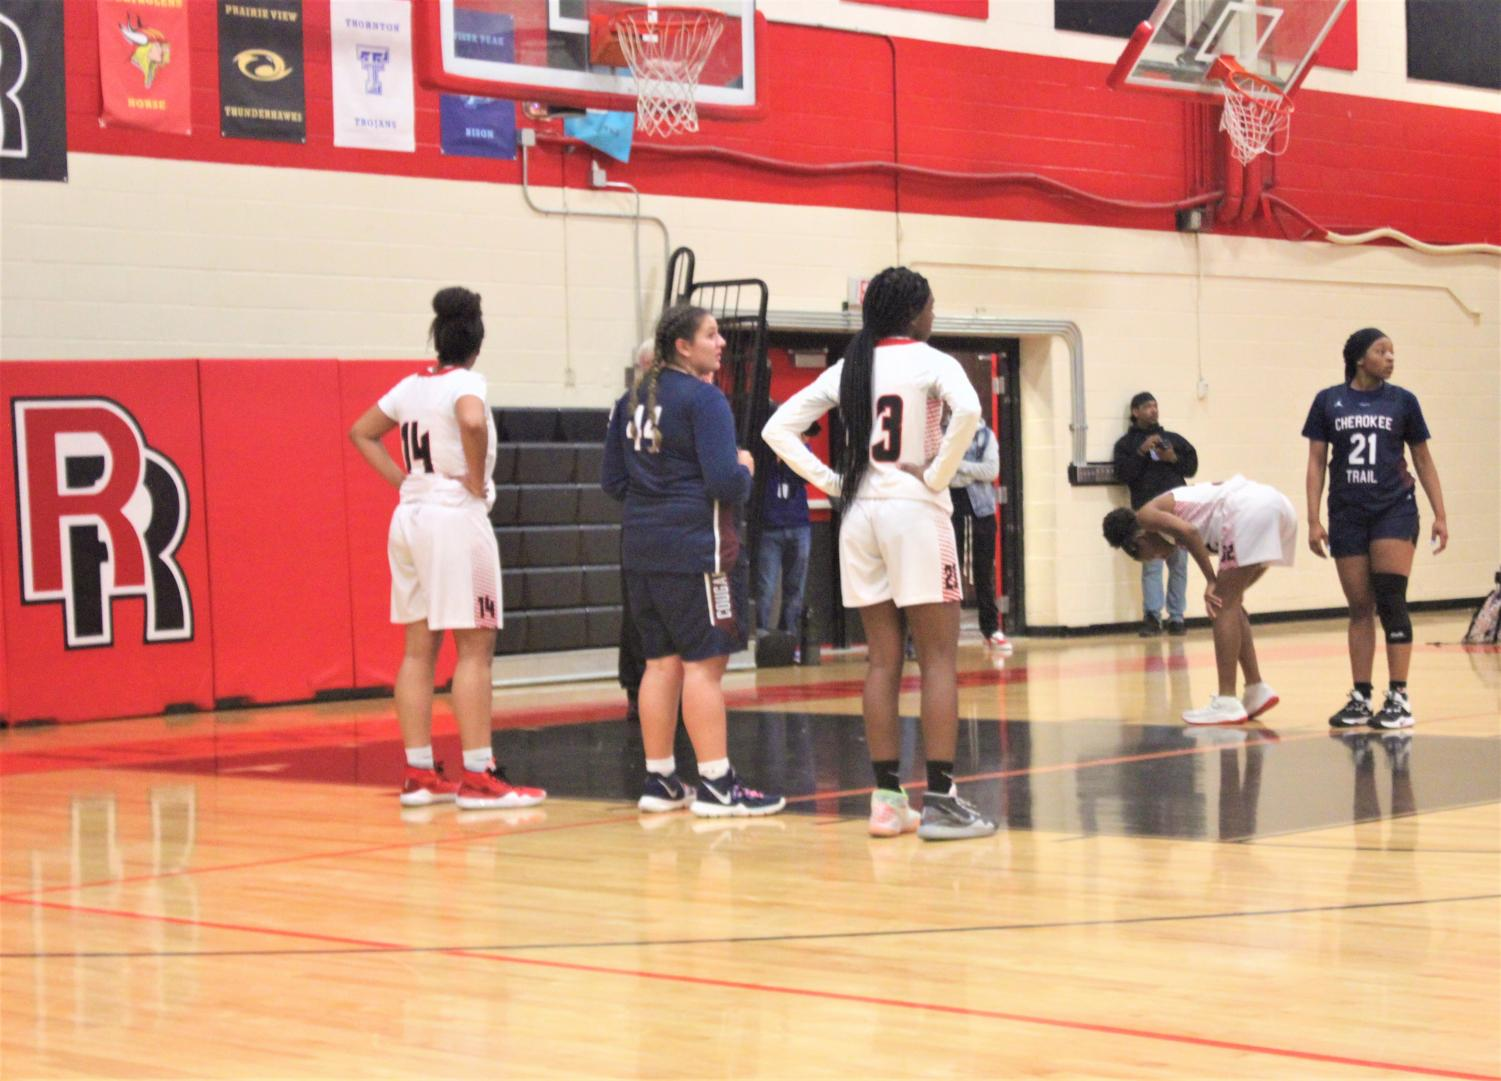 Sophomore Ny'Era West is one of Rangeview's top girls basketball players, and serves as a leader of the team.